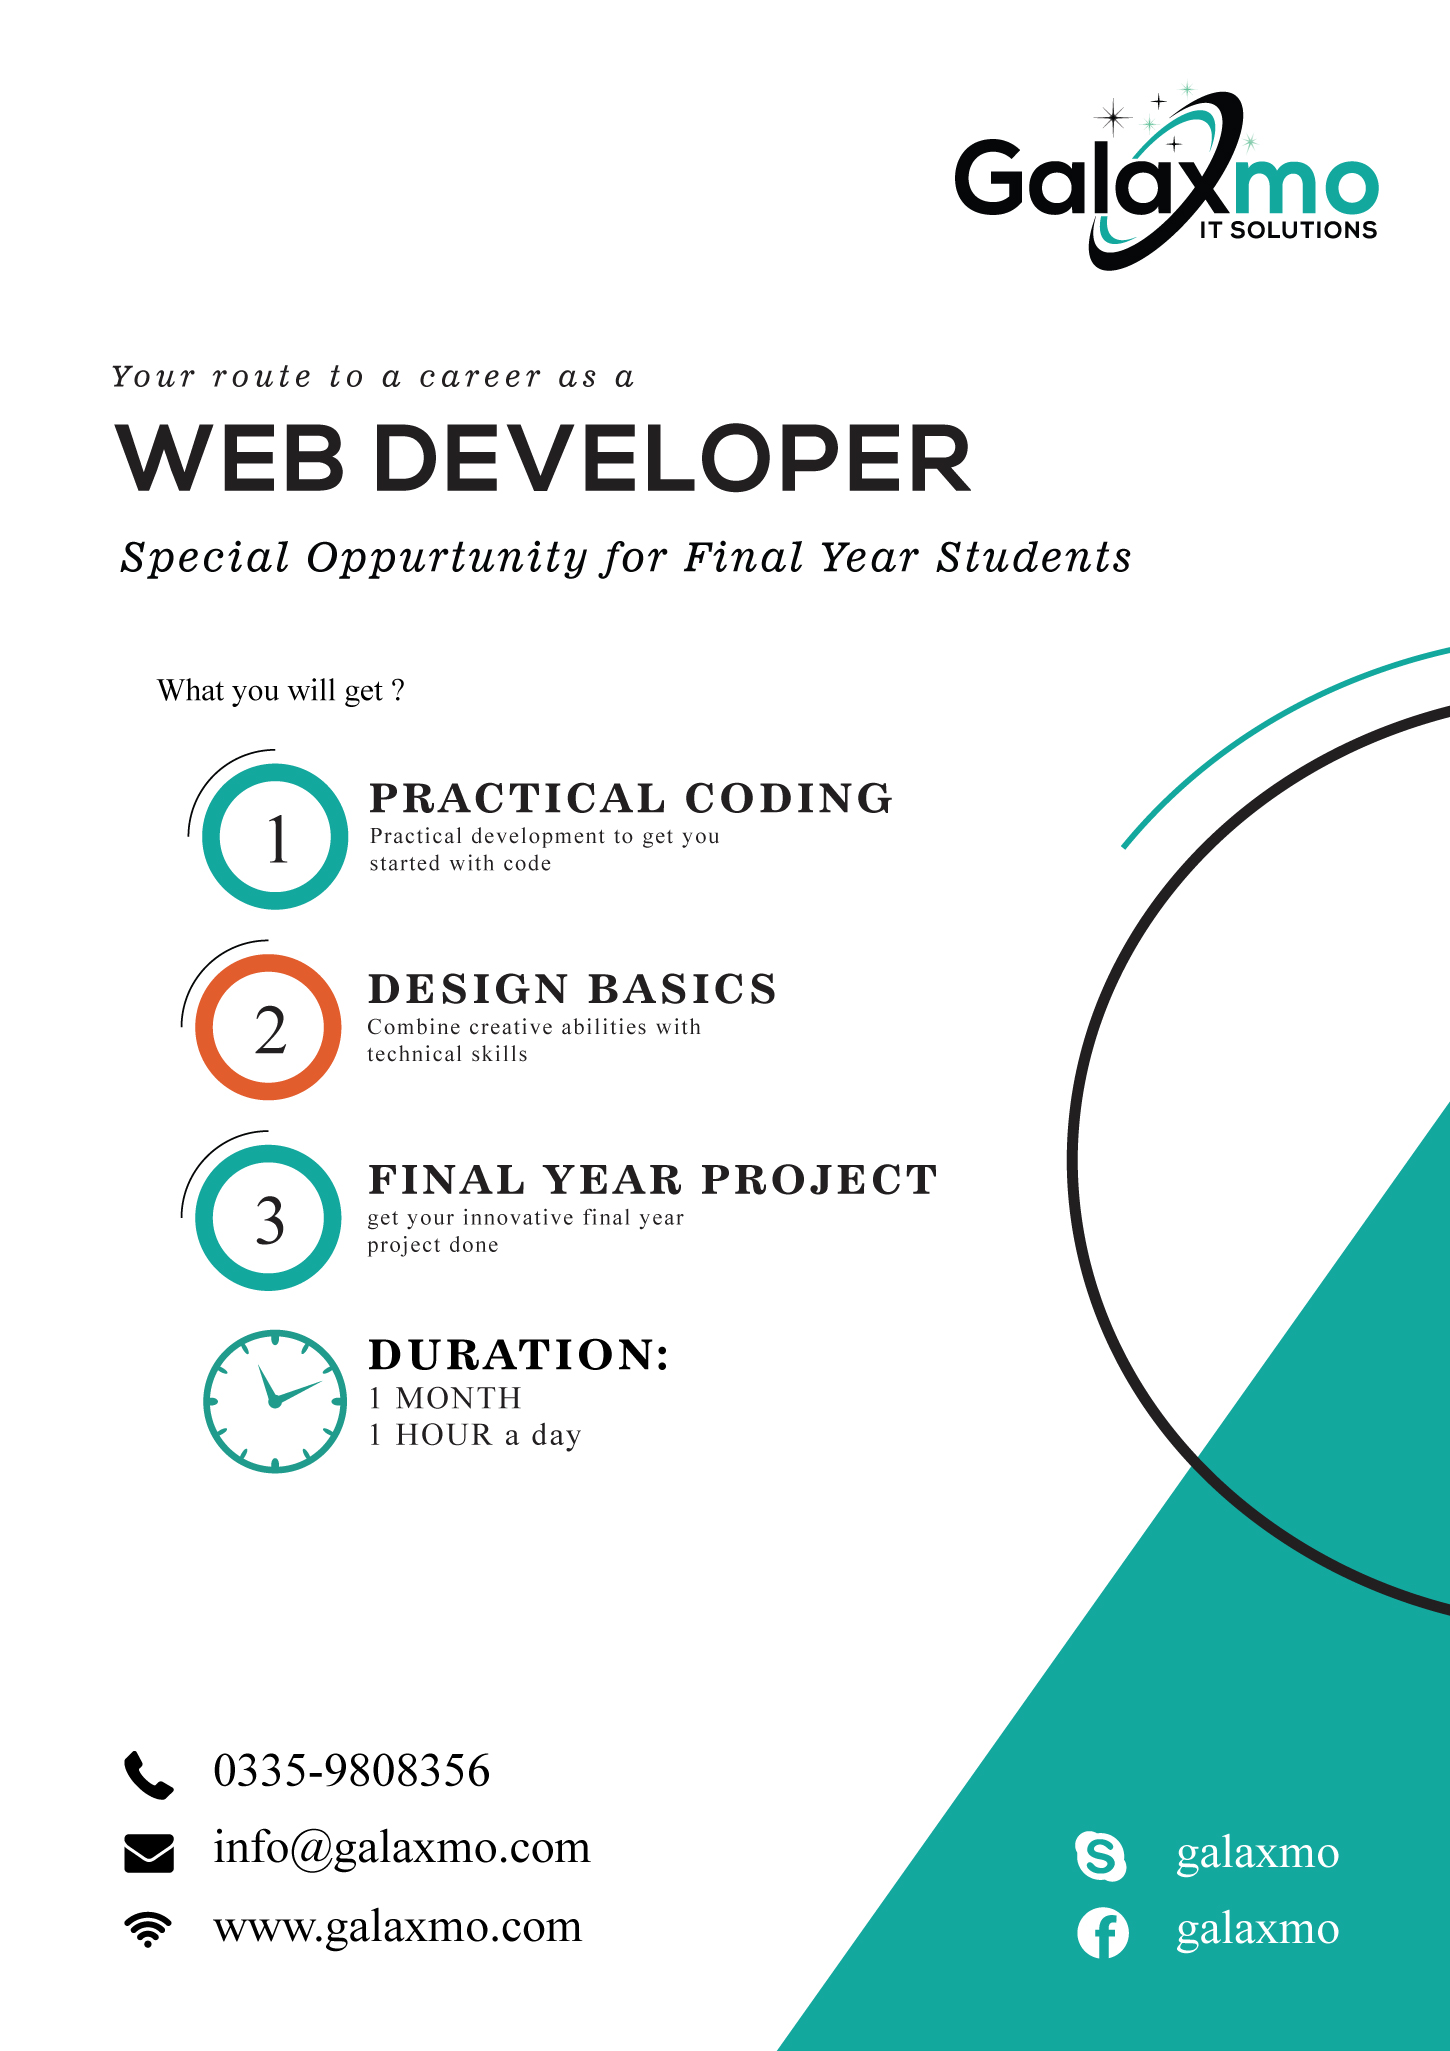 Web Development Course Poster – Galaxmo IT Solutions